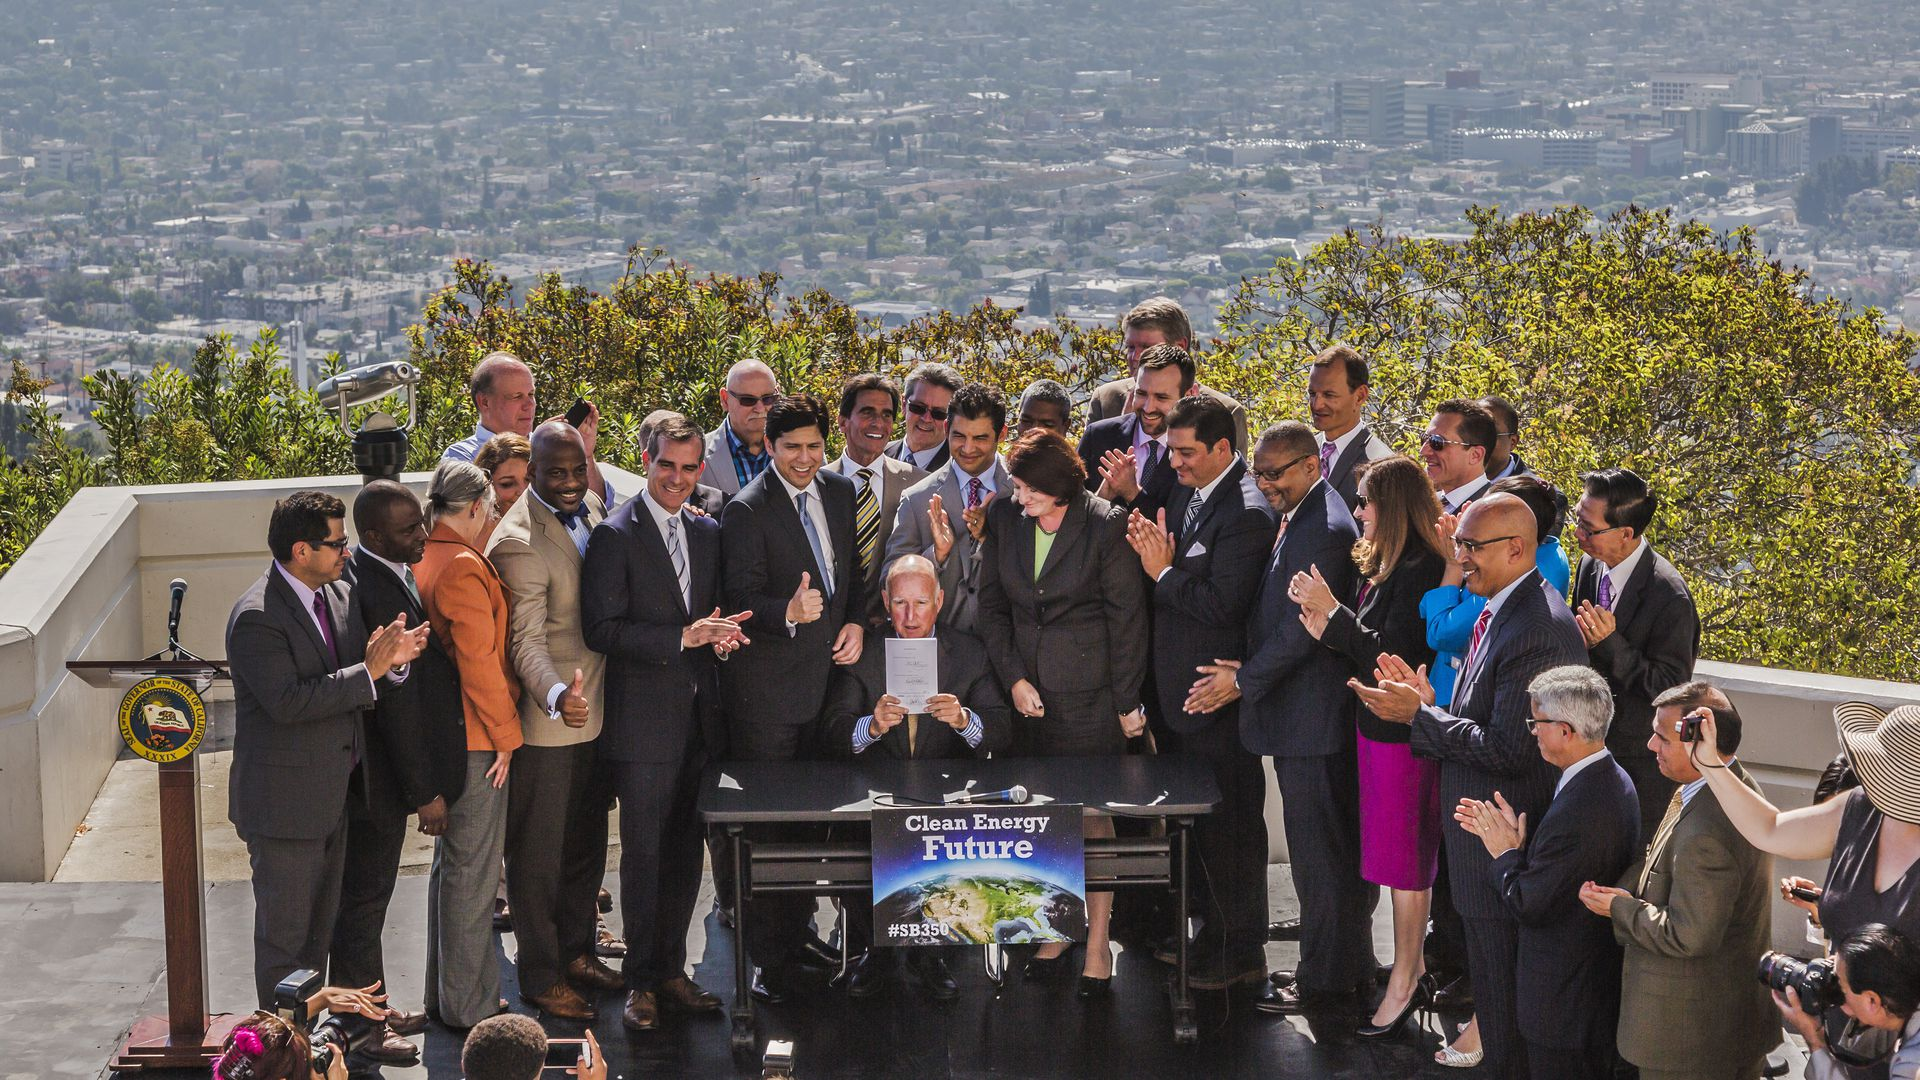 California governor Jerry Brown signs a bill into law with LA skyline behind him